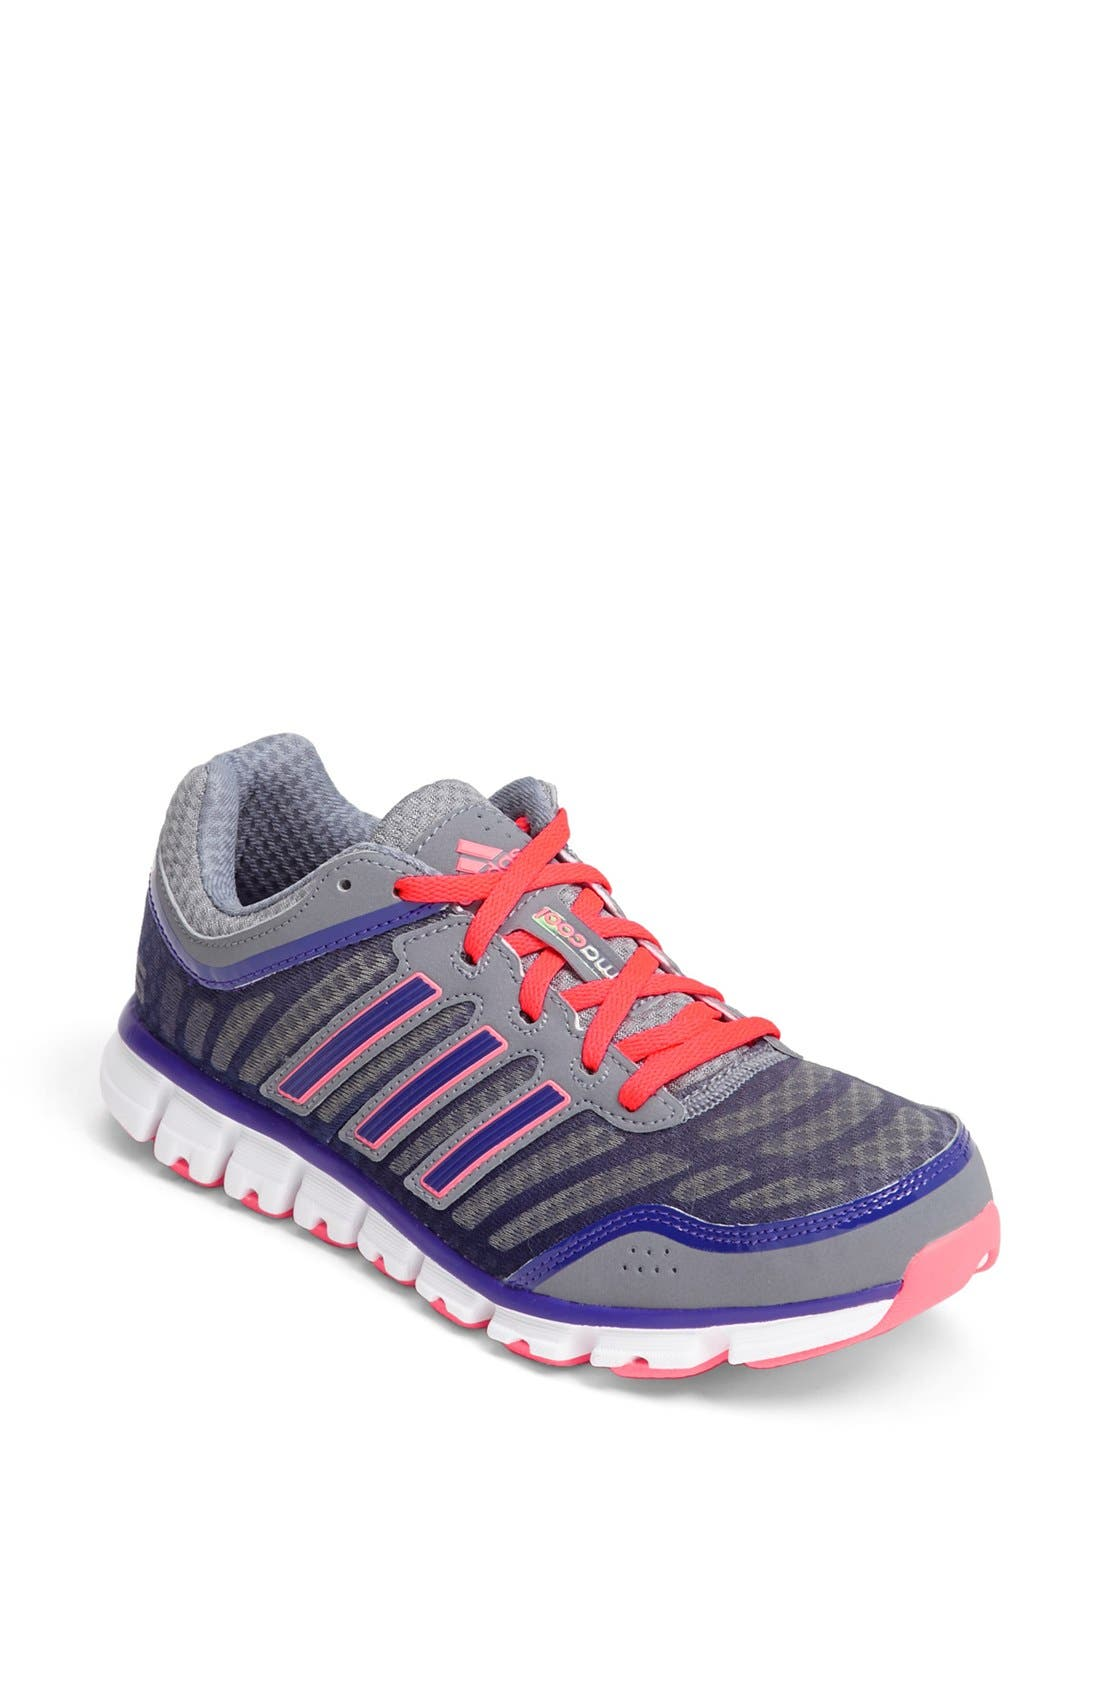 Alternate Image 1 Selected - adidas 'CLIMACOOL® Aerate' Running Shoe (Women)